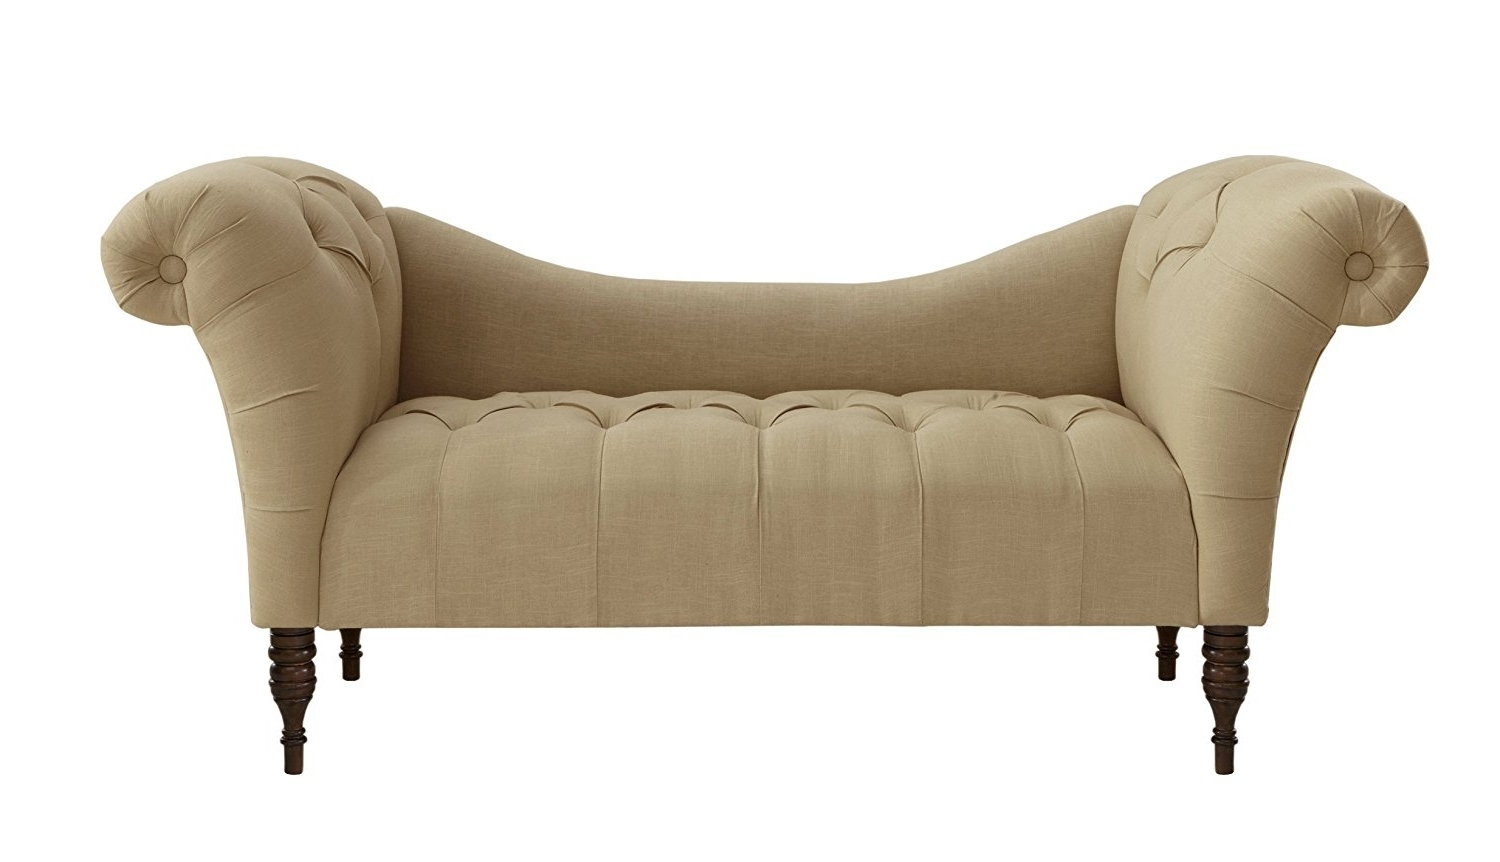 Skyline Chaise Lounges Within Best And Newest Amazon: Skyline Furniture Tufted Chaise Lounge In Linen (View 11 of 15)